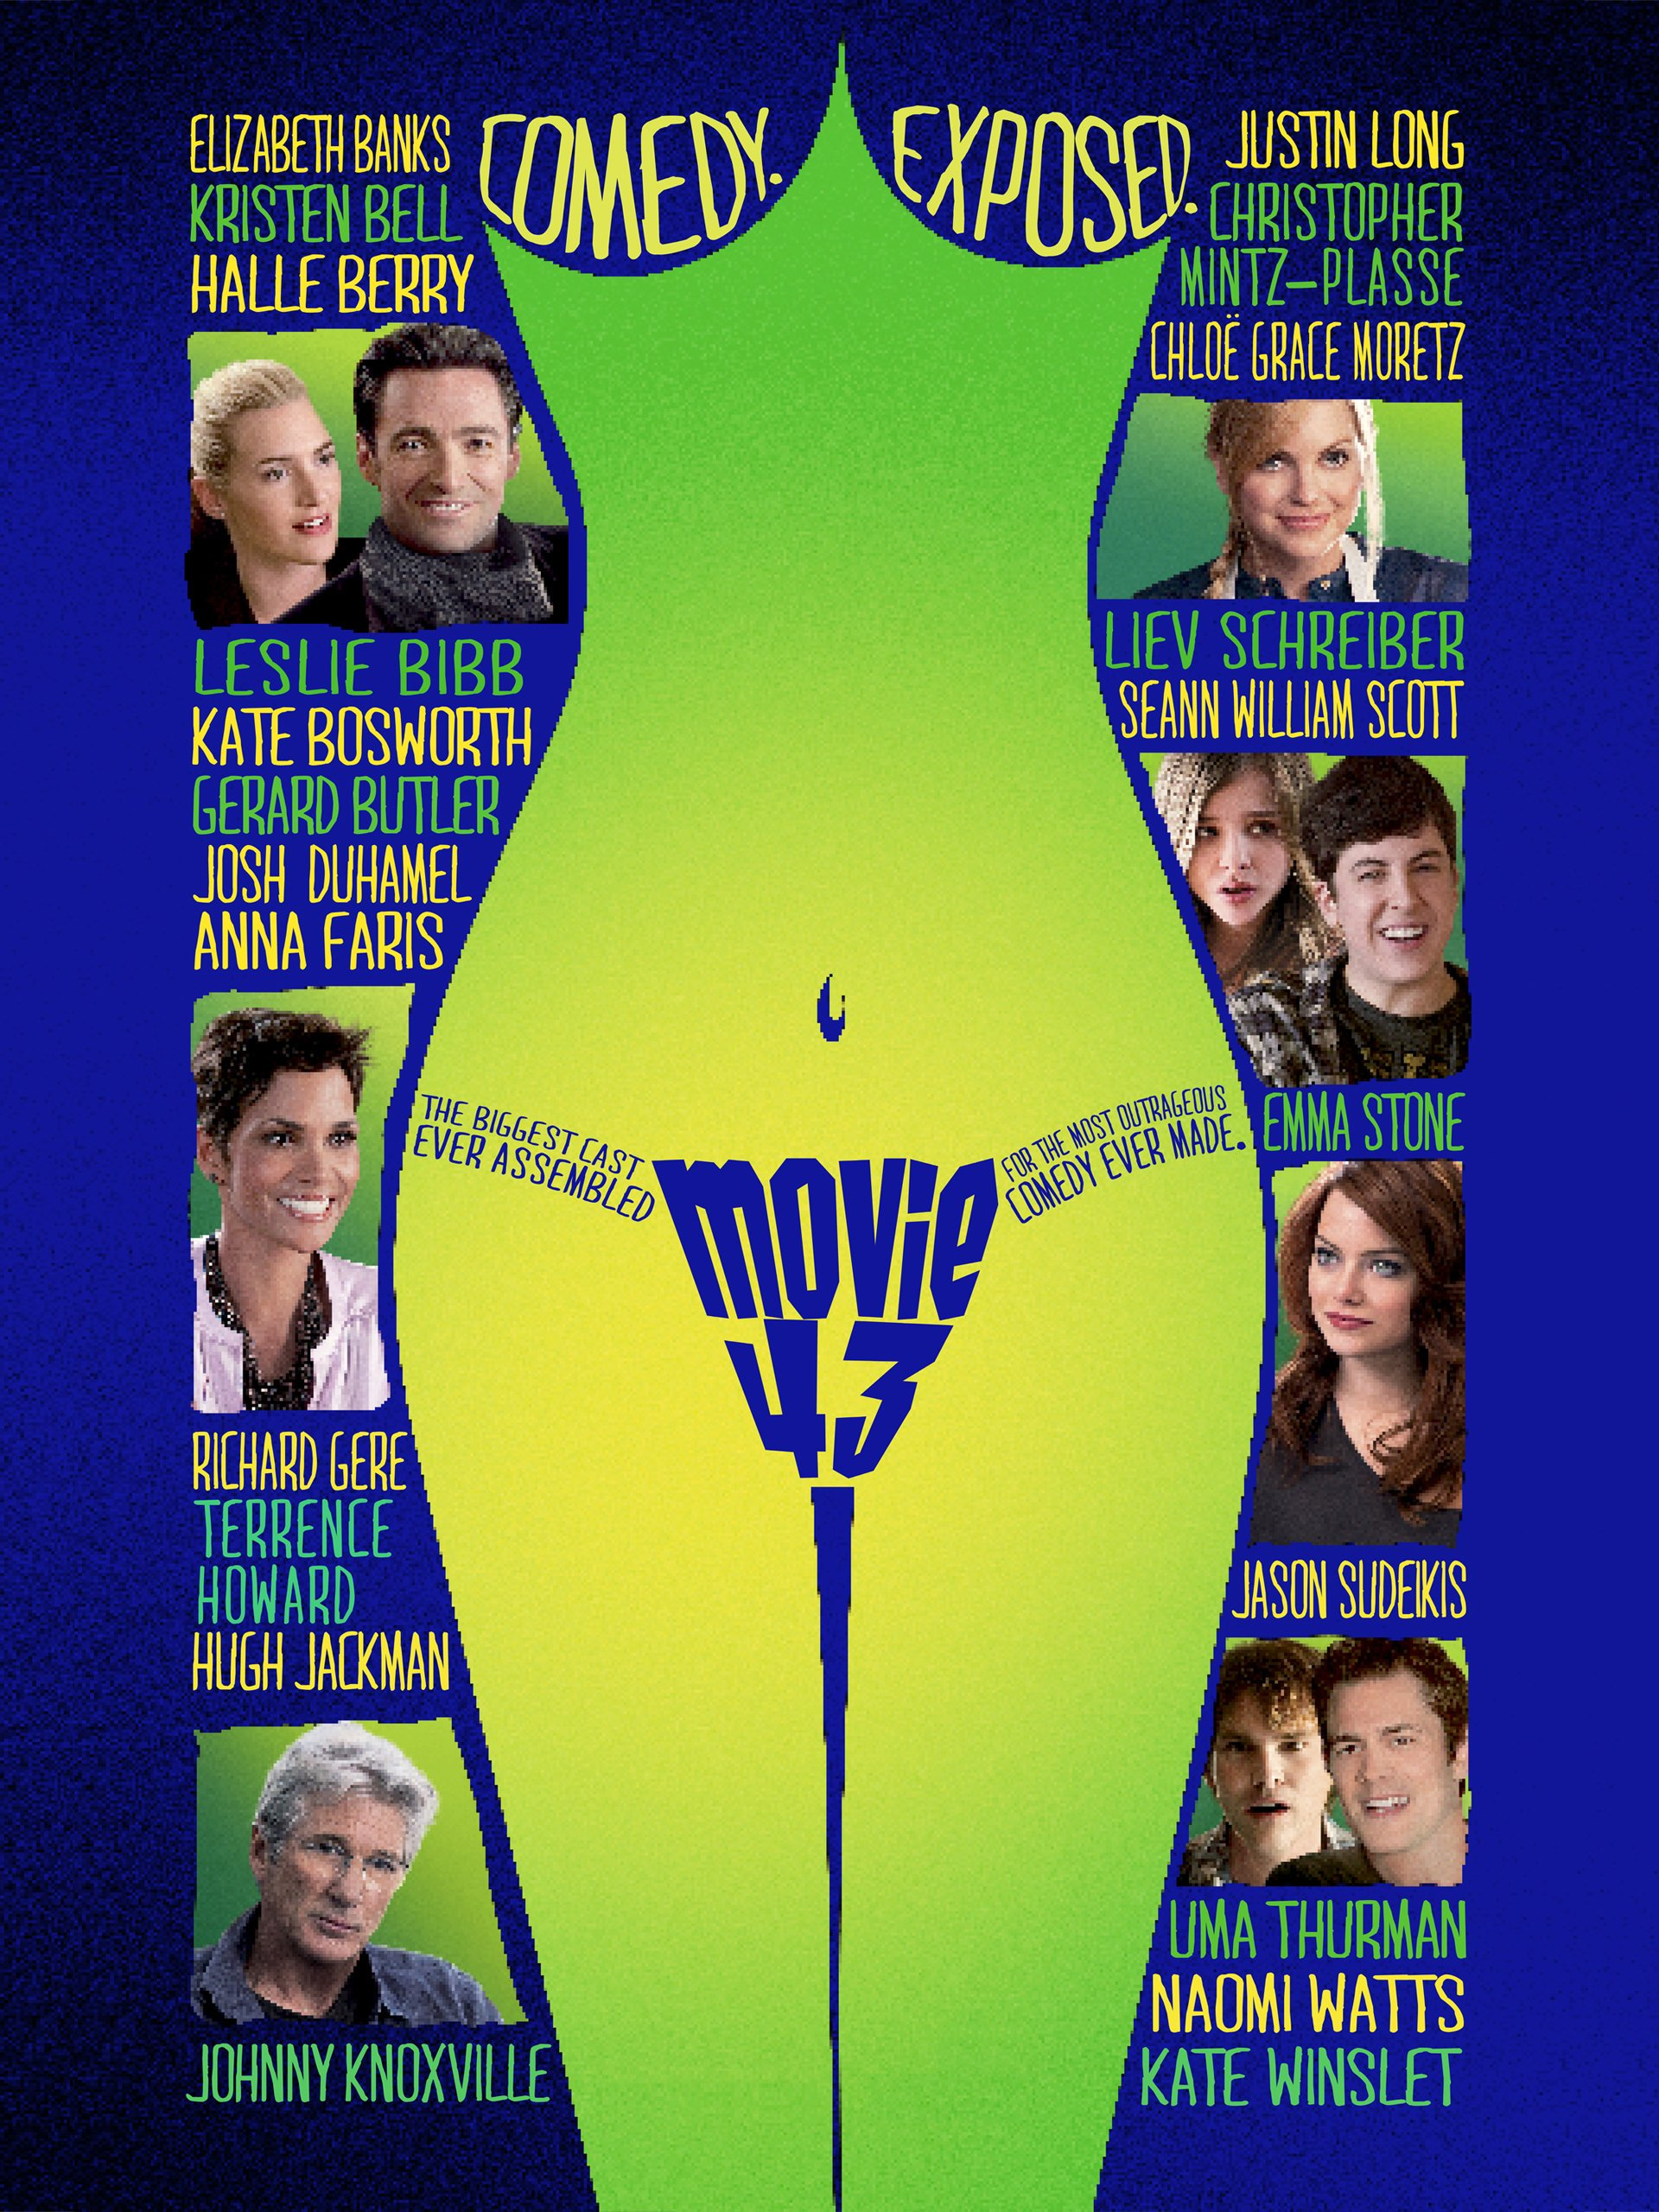 Movie 43 by